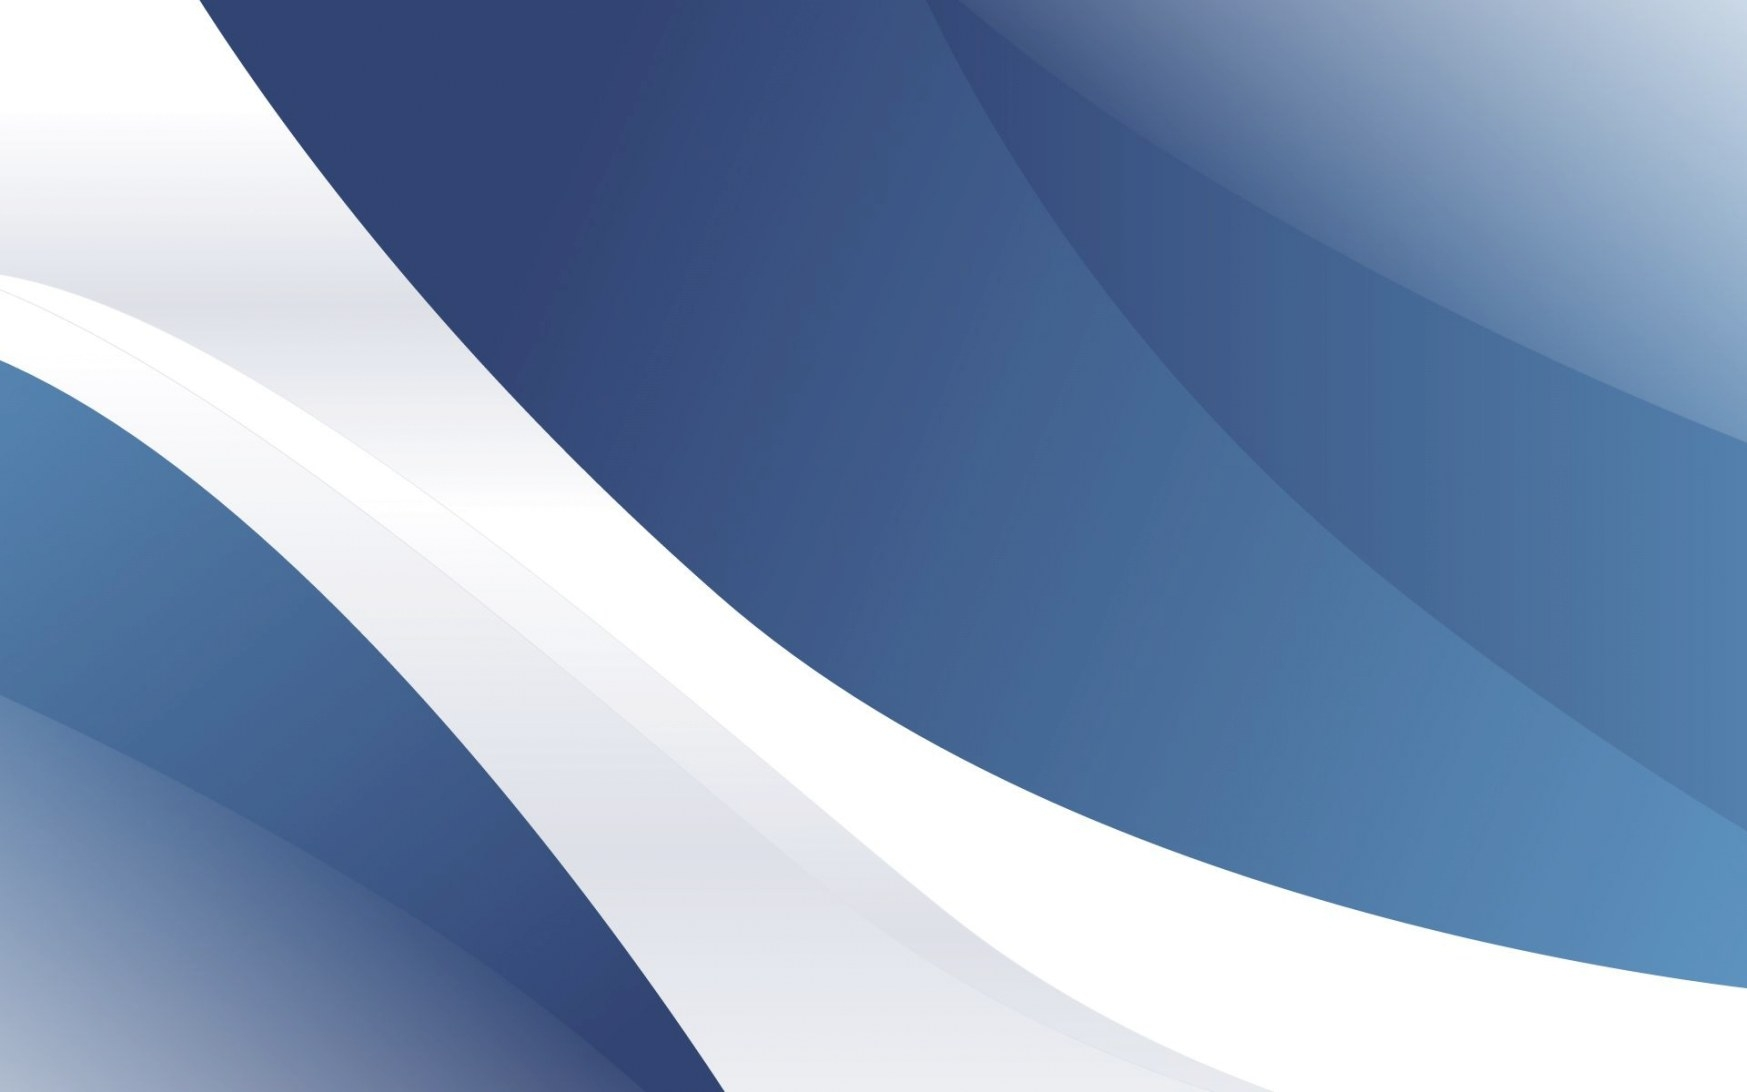 Image For Best Hd Wallpaper Gookep Blue And White within Blue And White Wallpaper